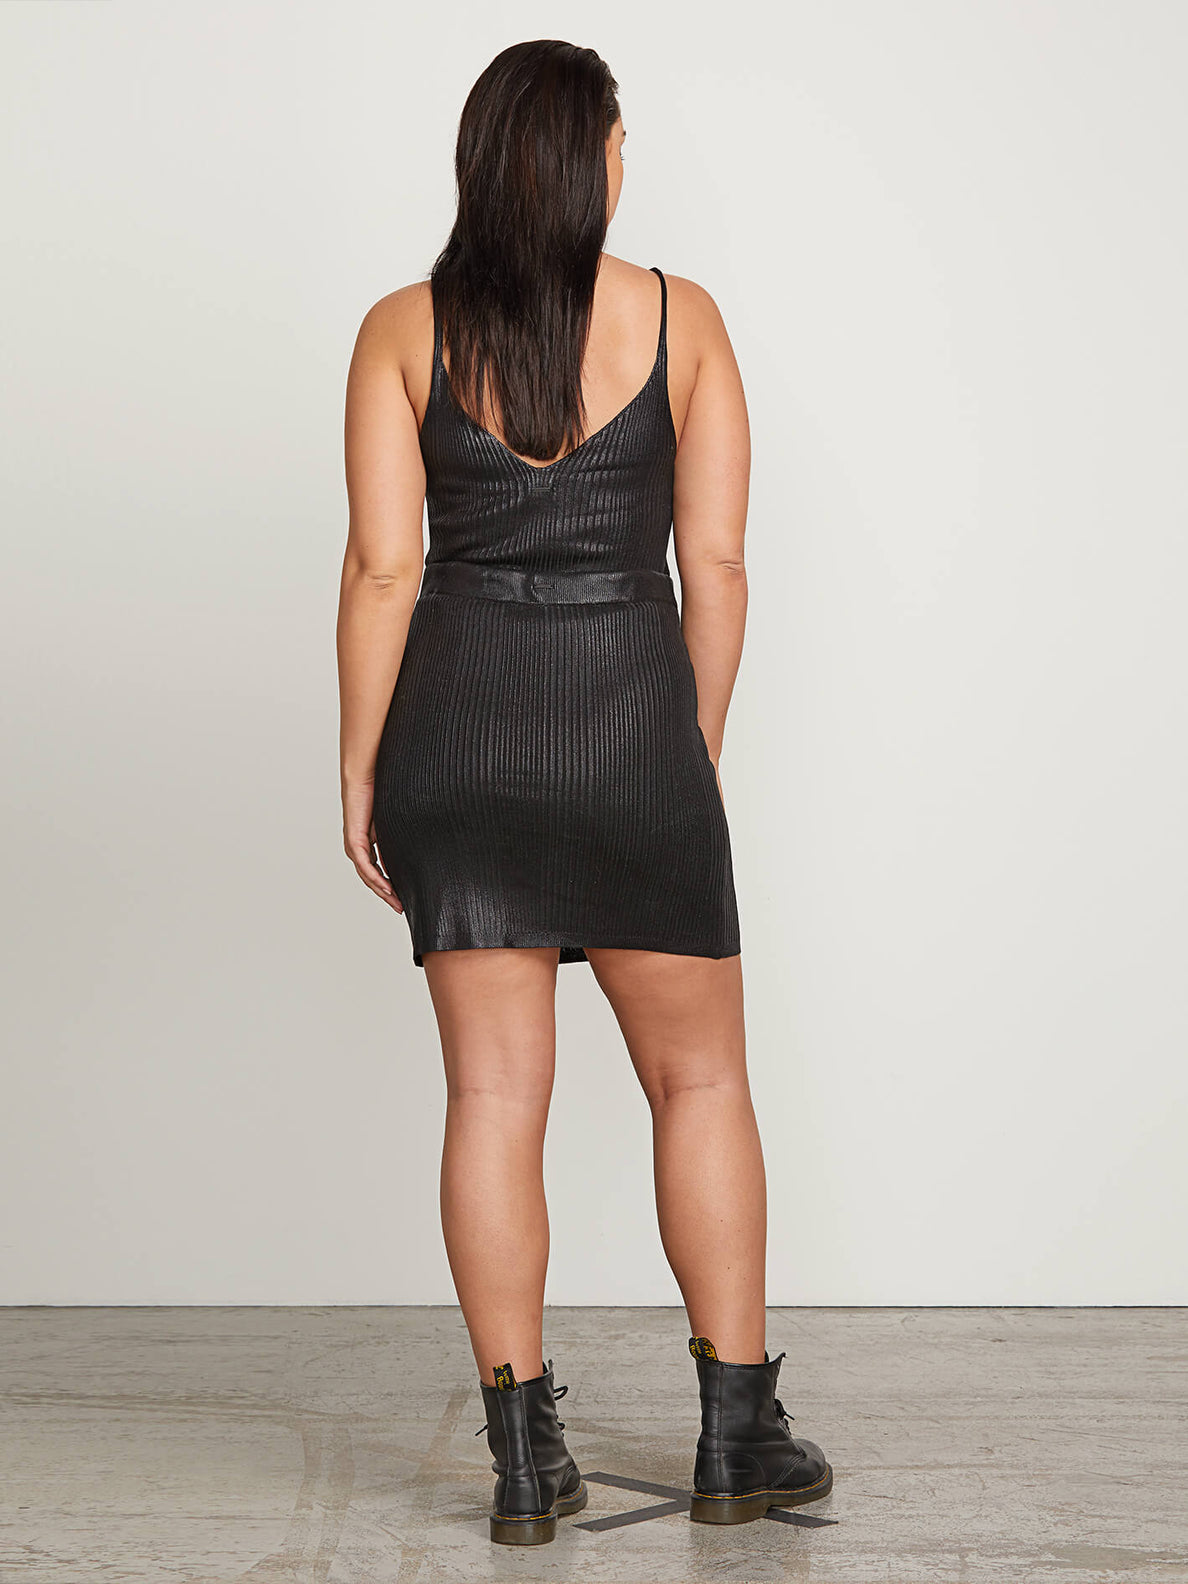 Hey Slick Skirt In Black, Back Extended Size View